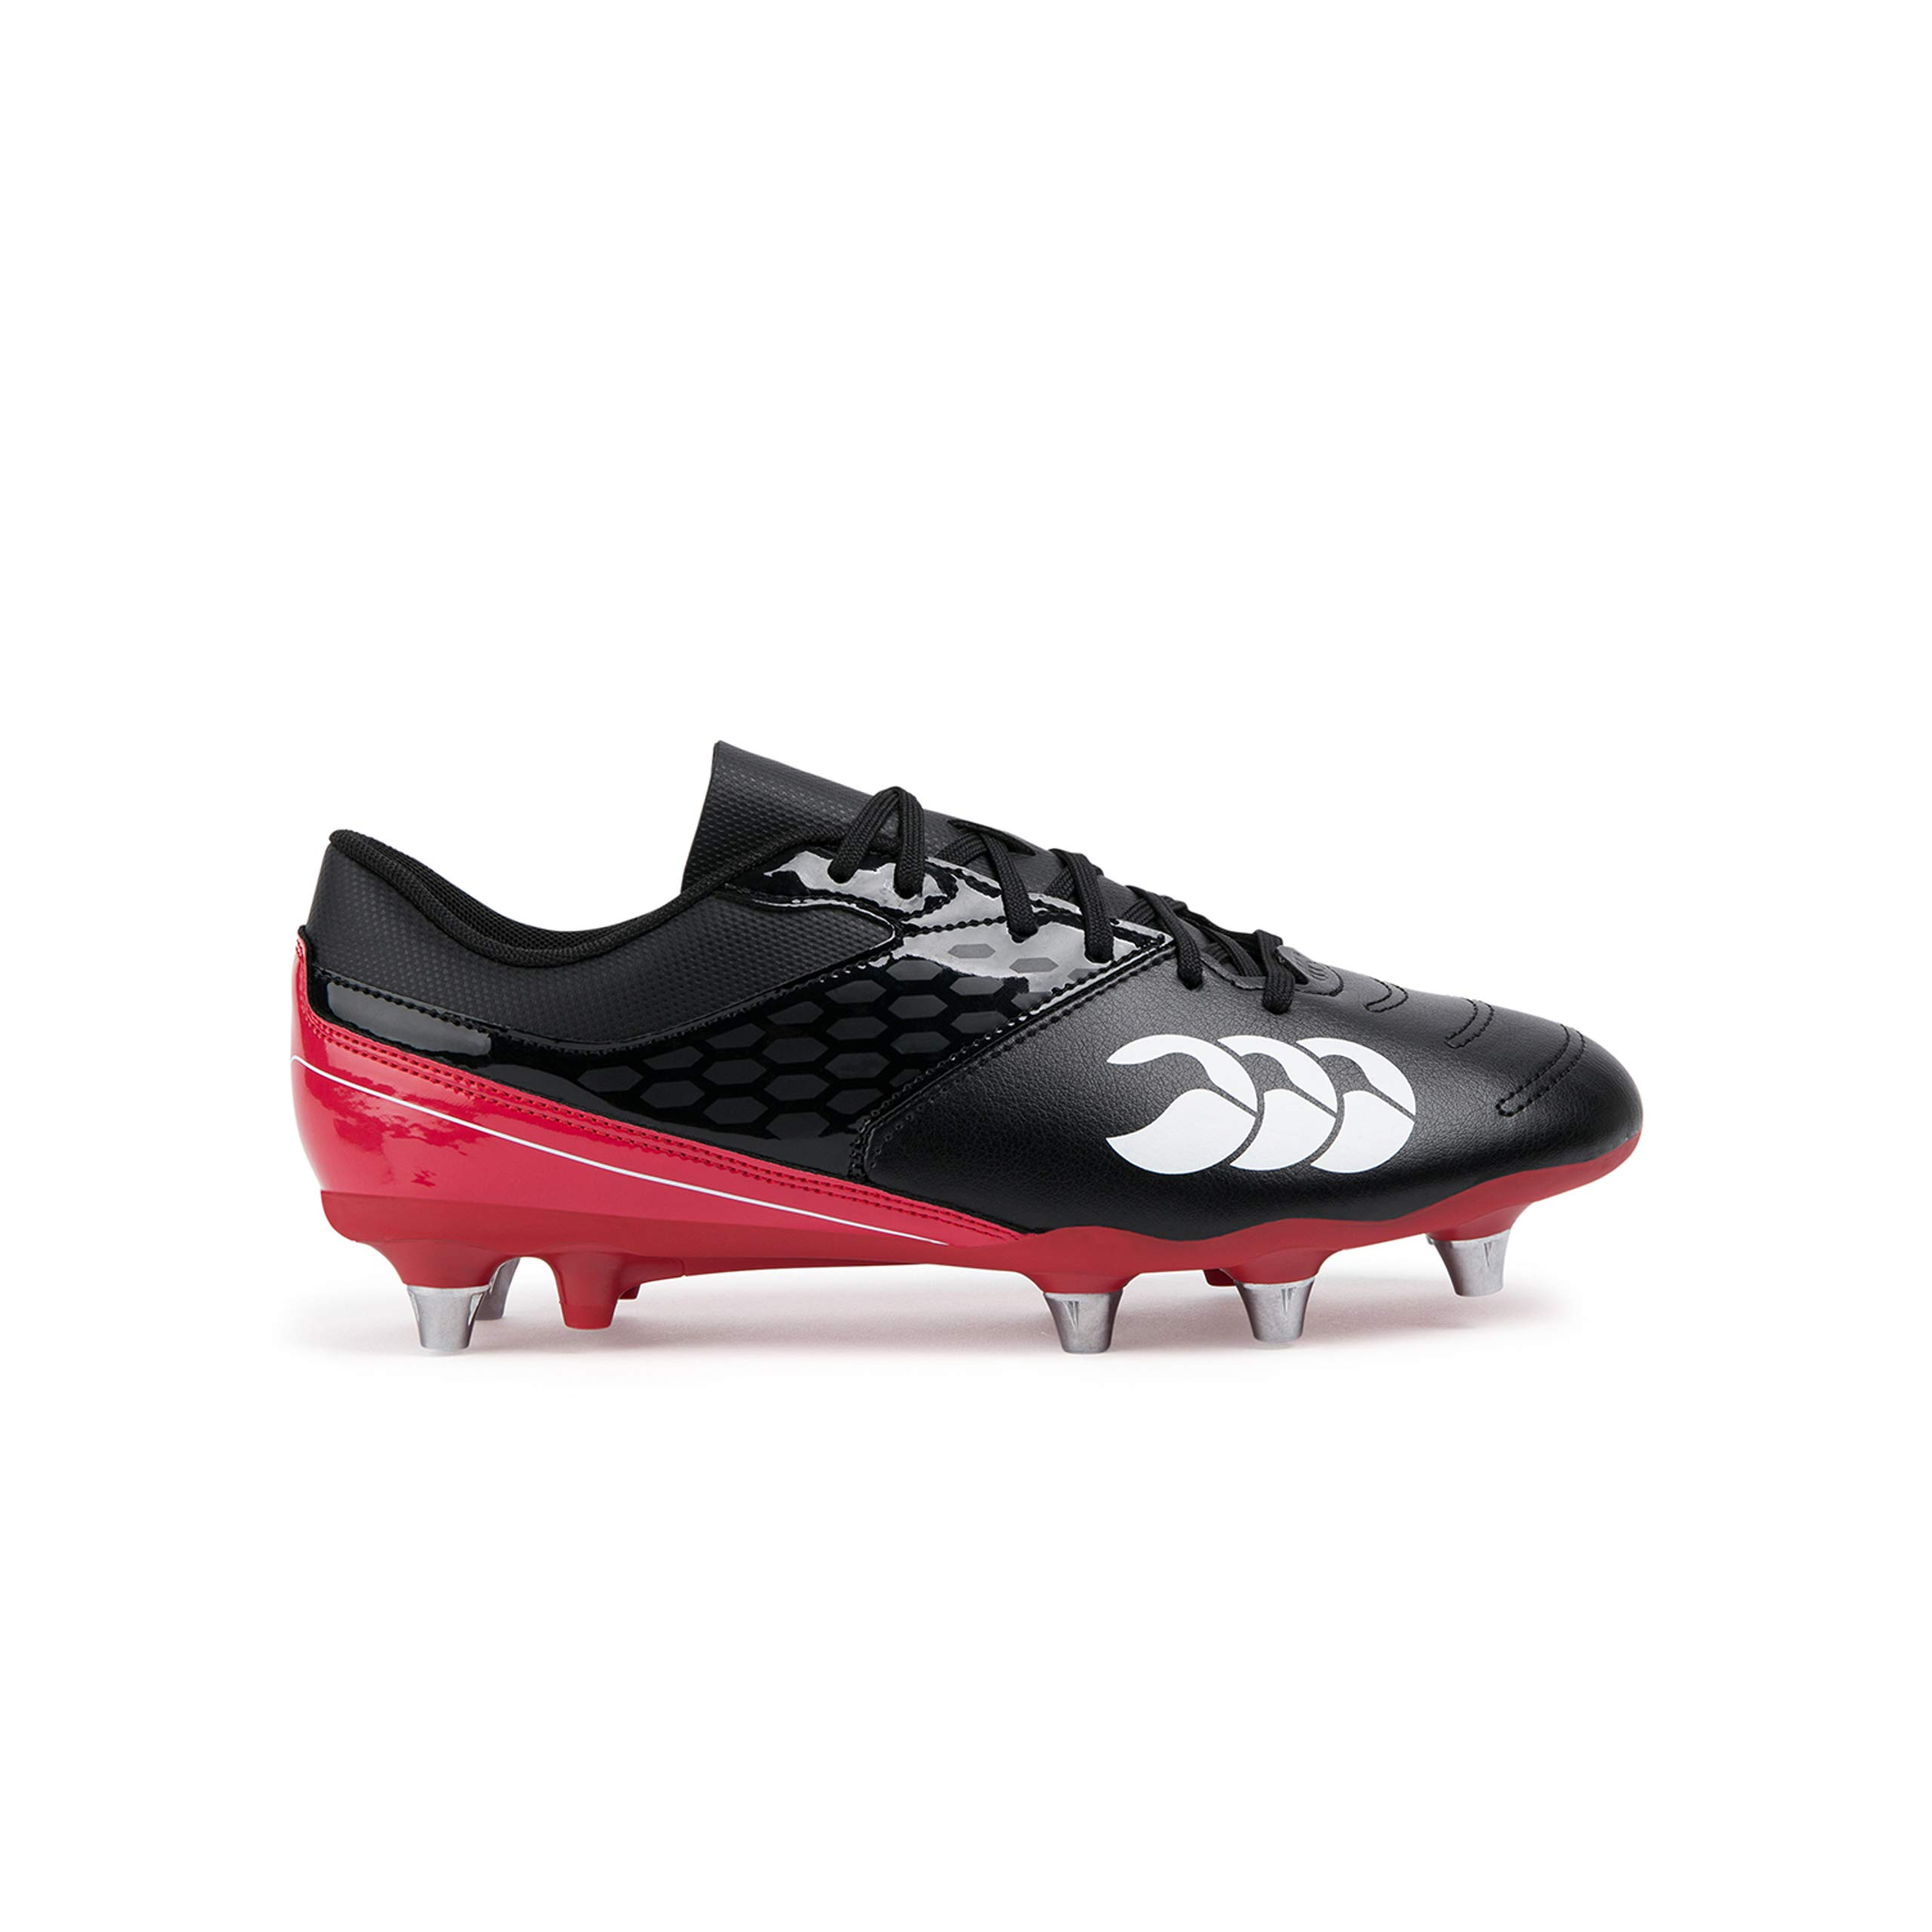 Canterbury Phoenix Raze Sg Rugby Boot Black/red by Canterbury